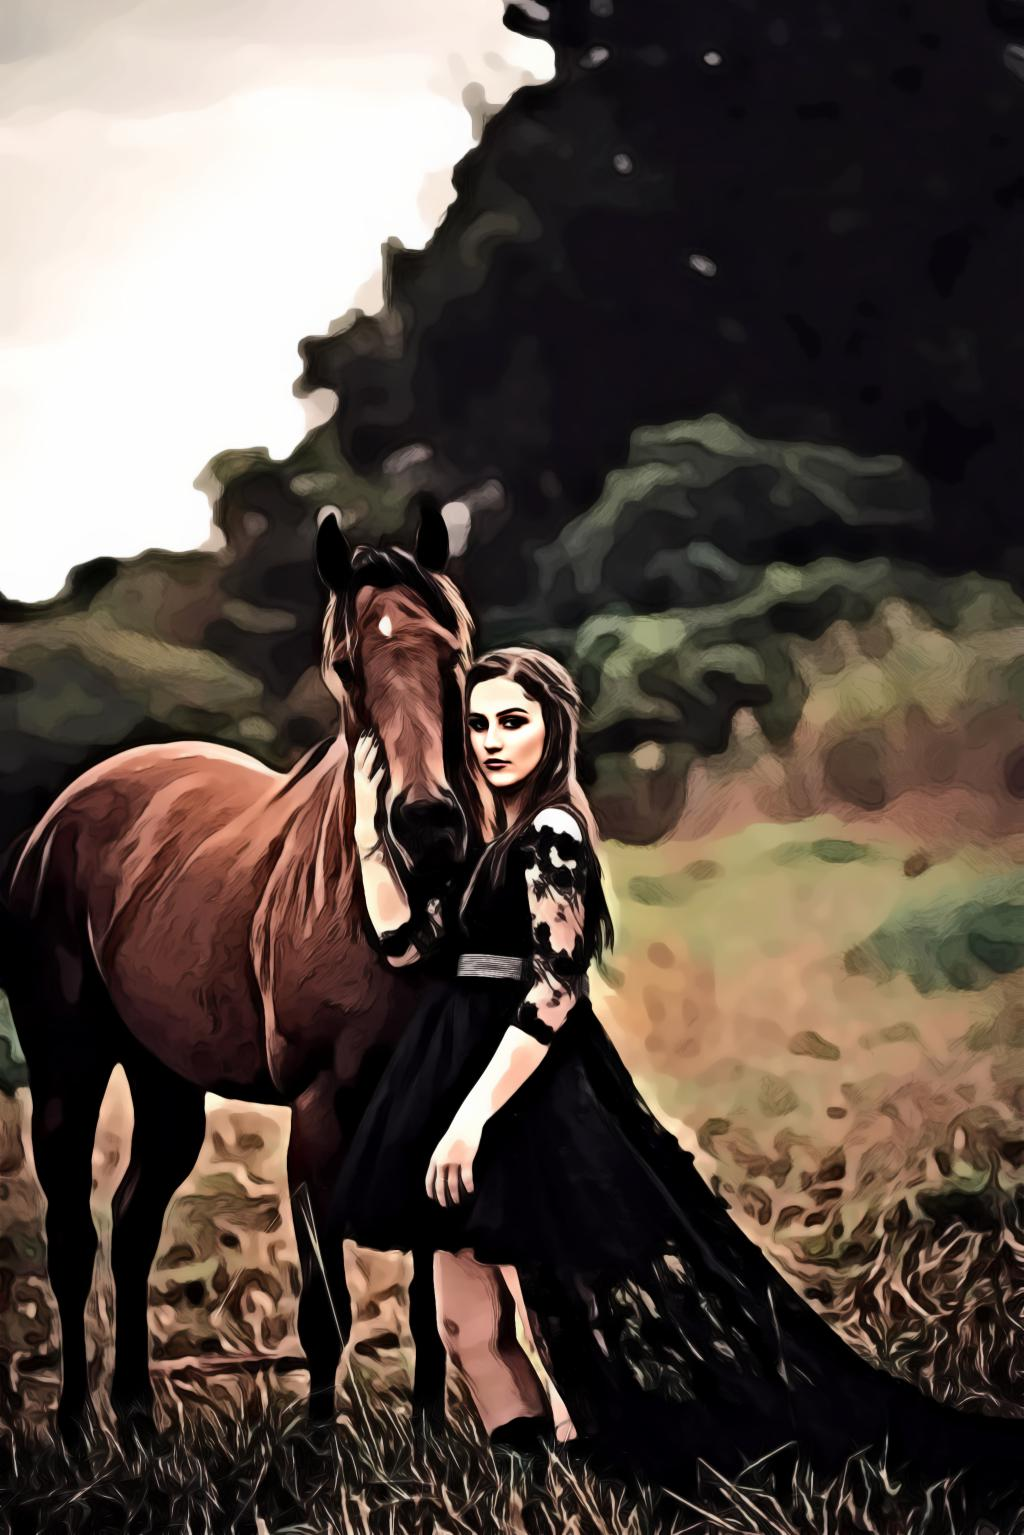 Woman wearing black dress beside horse